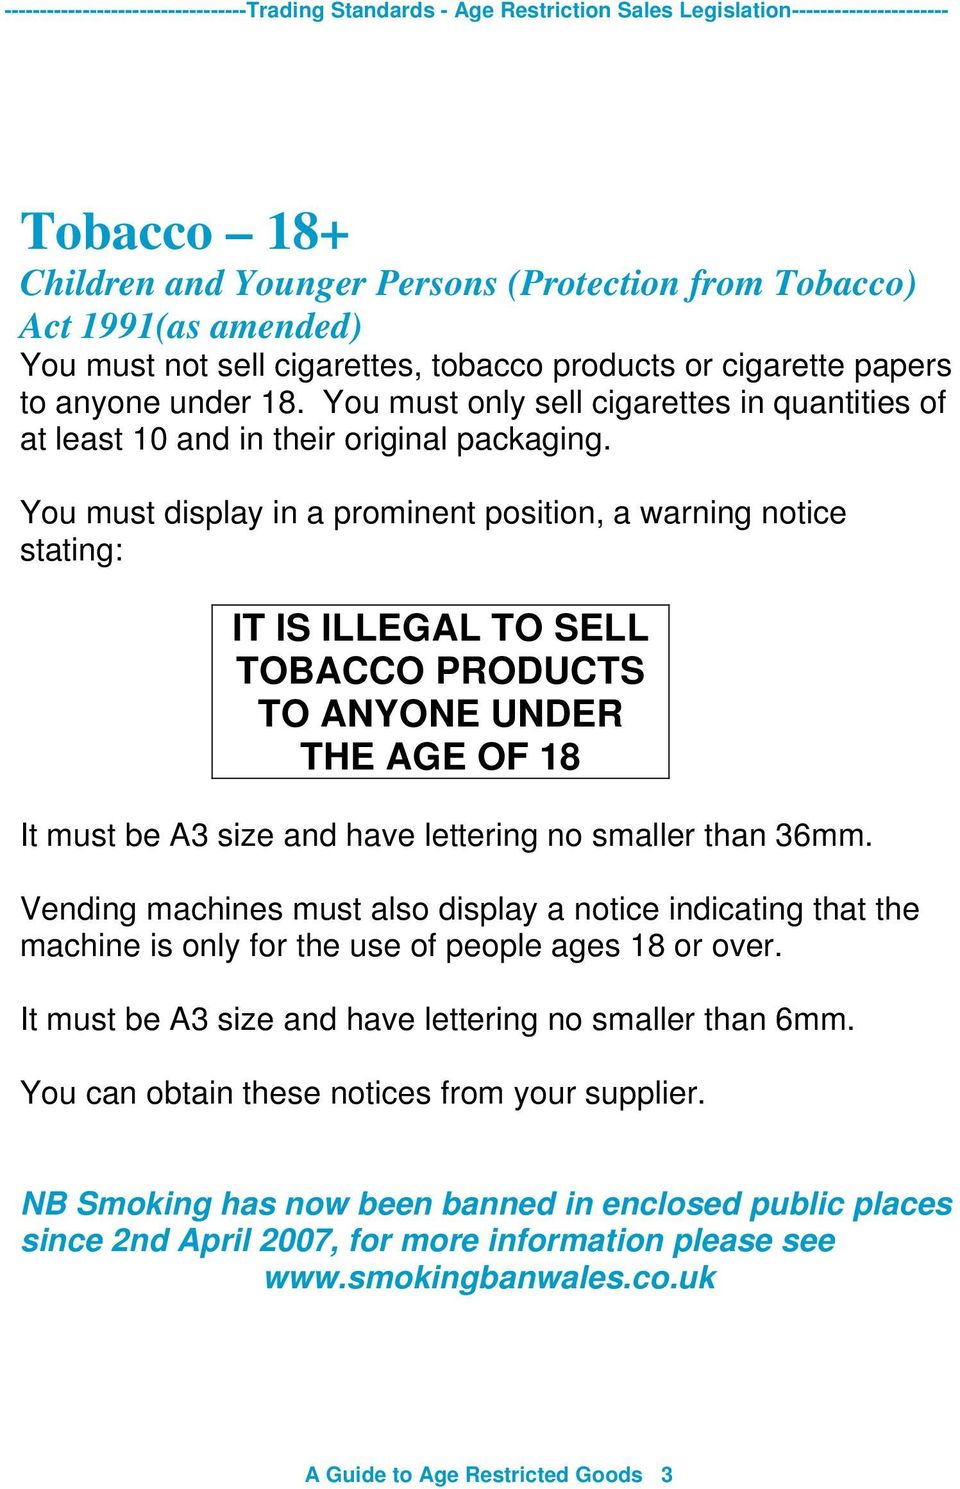 You must display in a prominent position, a warning notice stating: IT IS ILLEGAL TO SELL TOBACCO PRODUCTS TO ANYONE UNDER THE AGE OF 18 It must be A3 size and have lettering no smaller than 36mm.